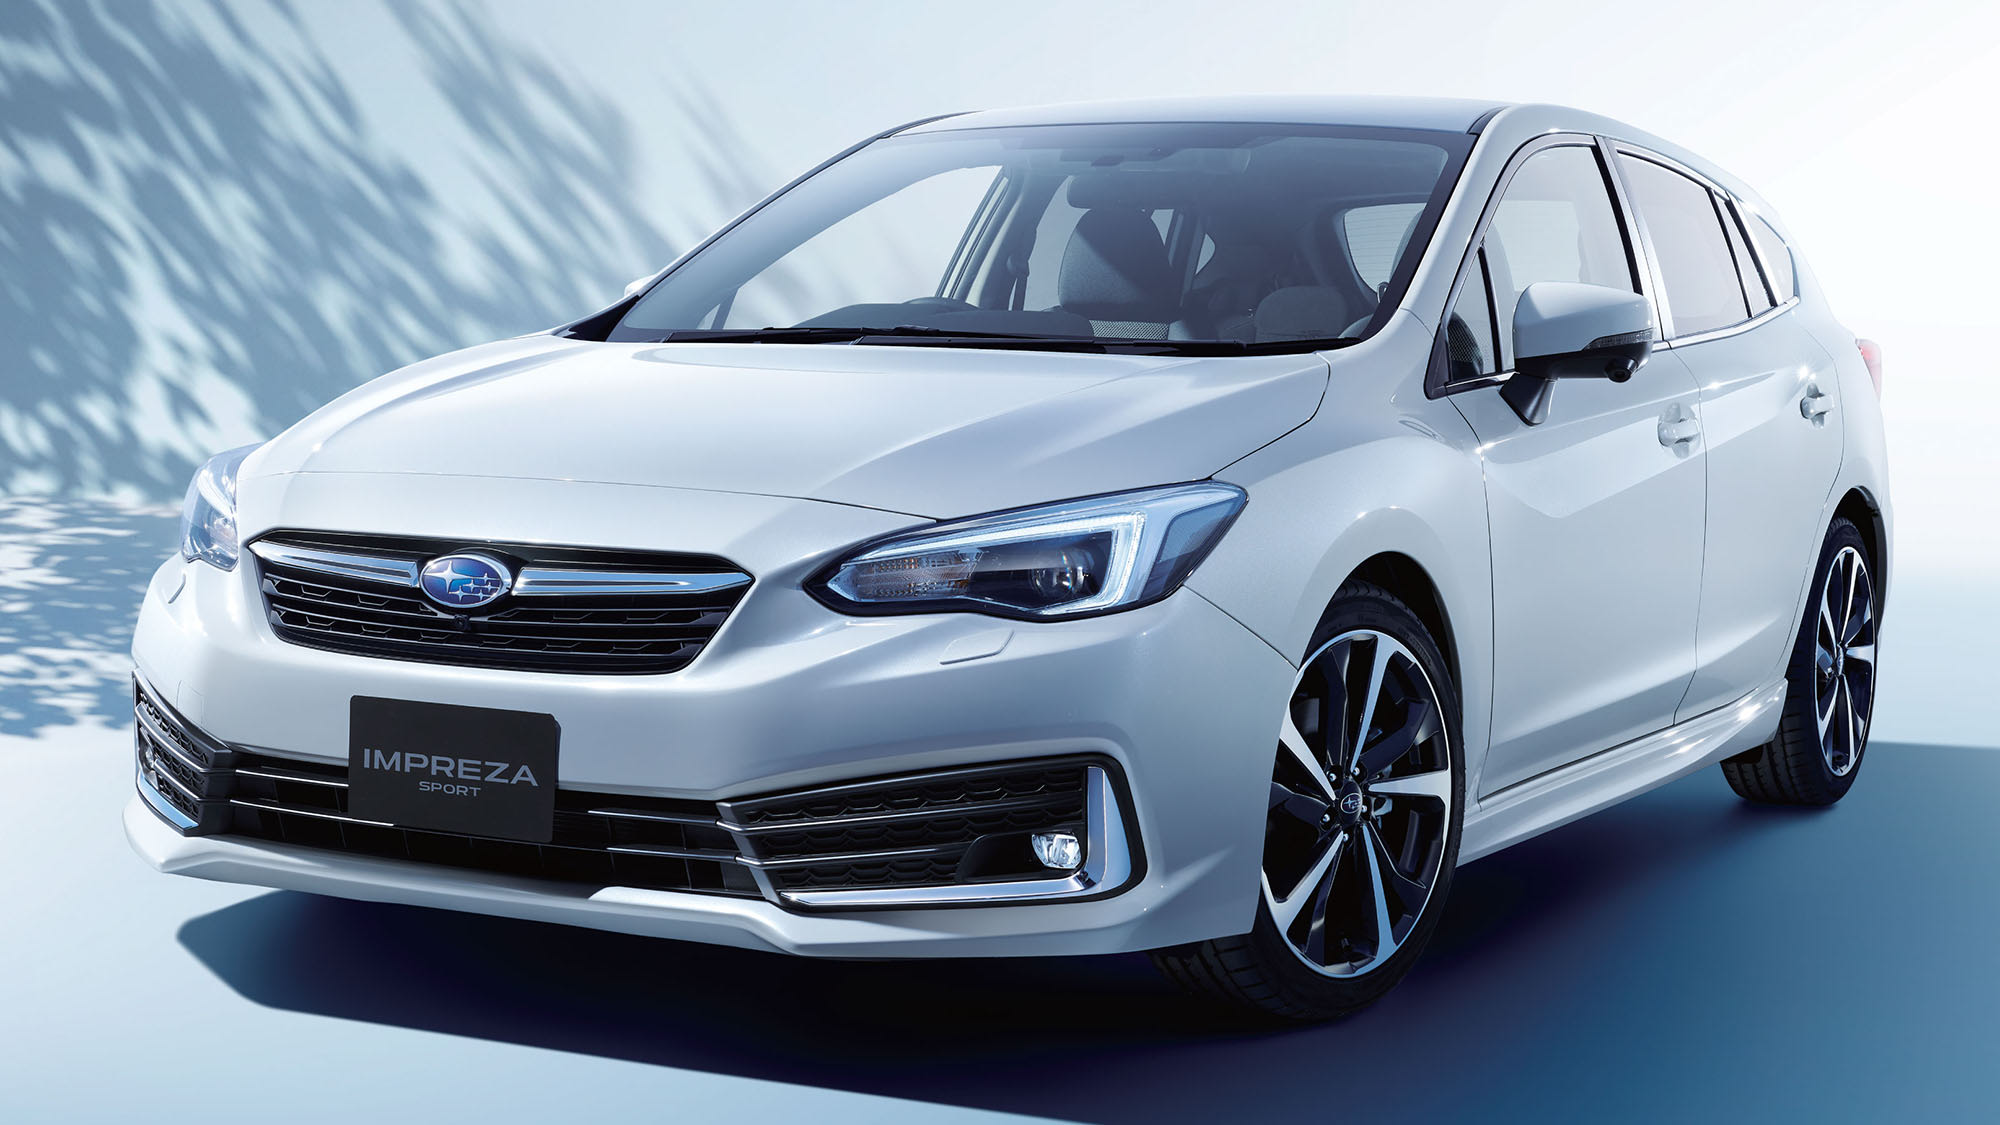 2020 Subaru Impreza Specs and Review